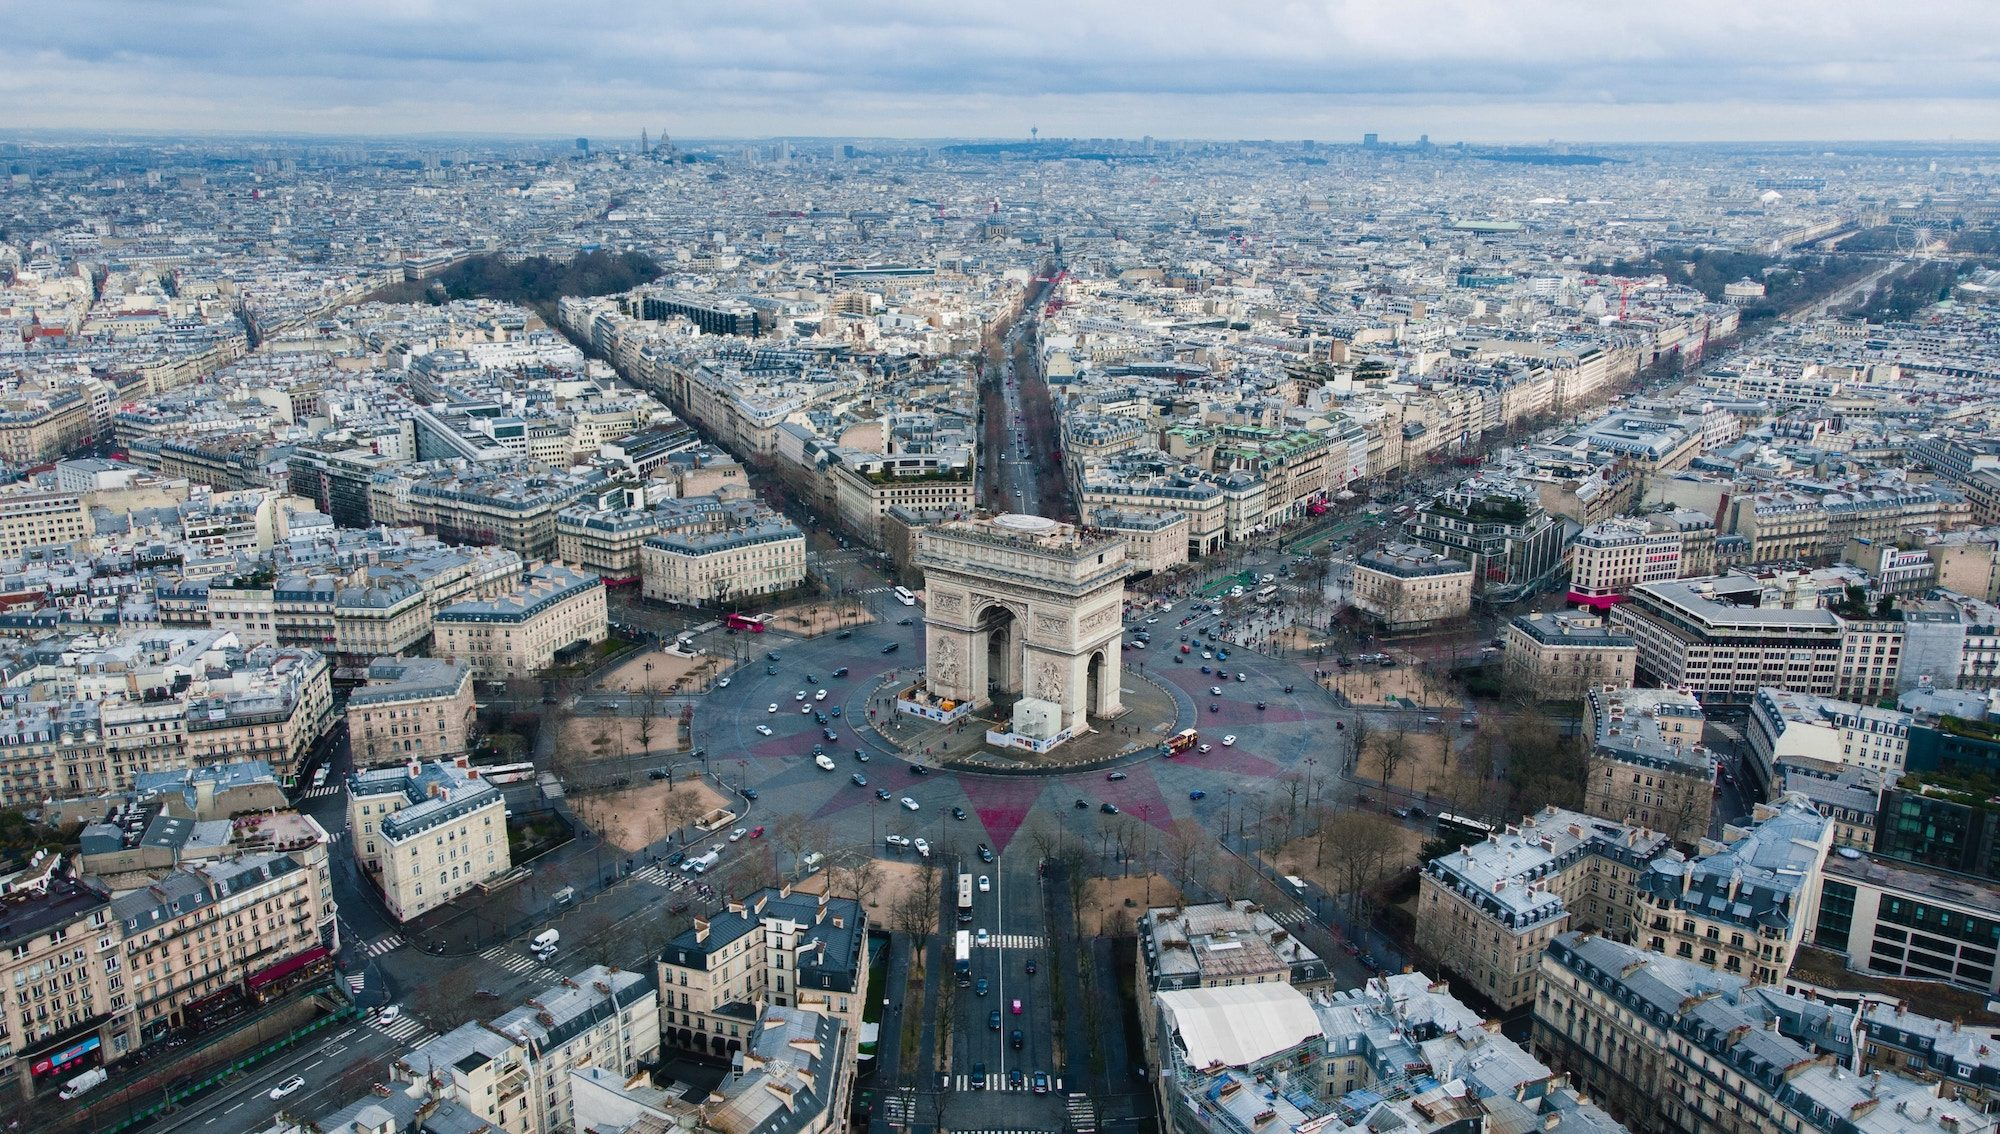 An aerial view of the Arc de Triomphe in Paris, often seen in Netflix movies, which are great for learning French.